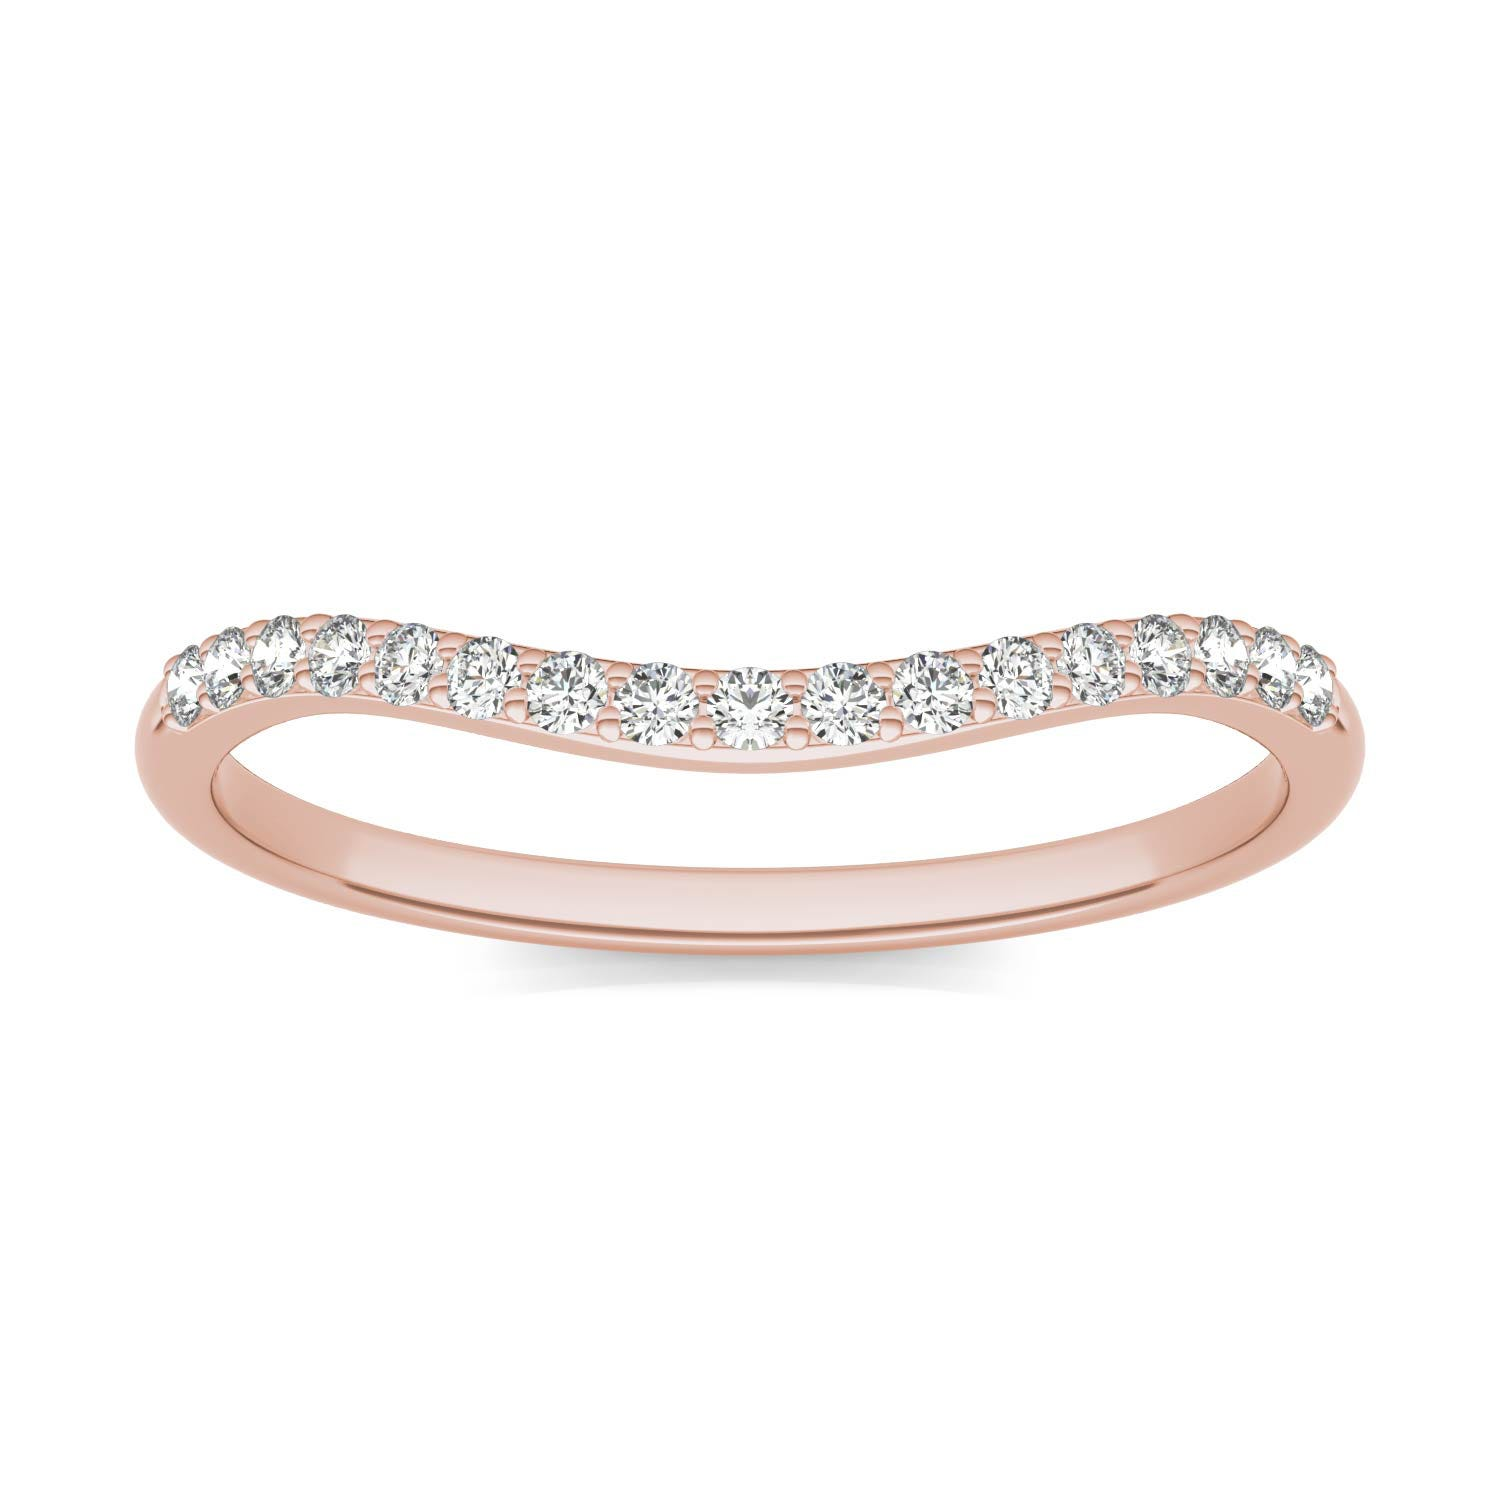 Signature 8mm Round Matching Band Wedding Ring in 18K Rose Gold, Size: 8.5, 1/6 CTW Charles & Colvard